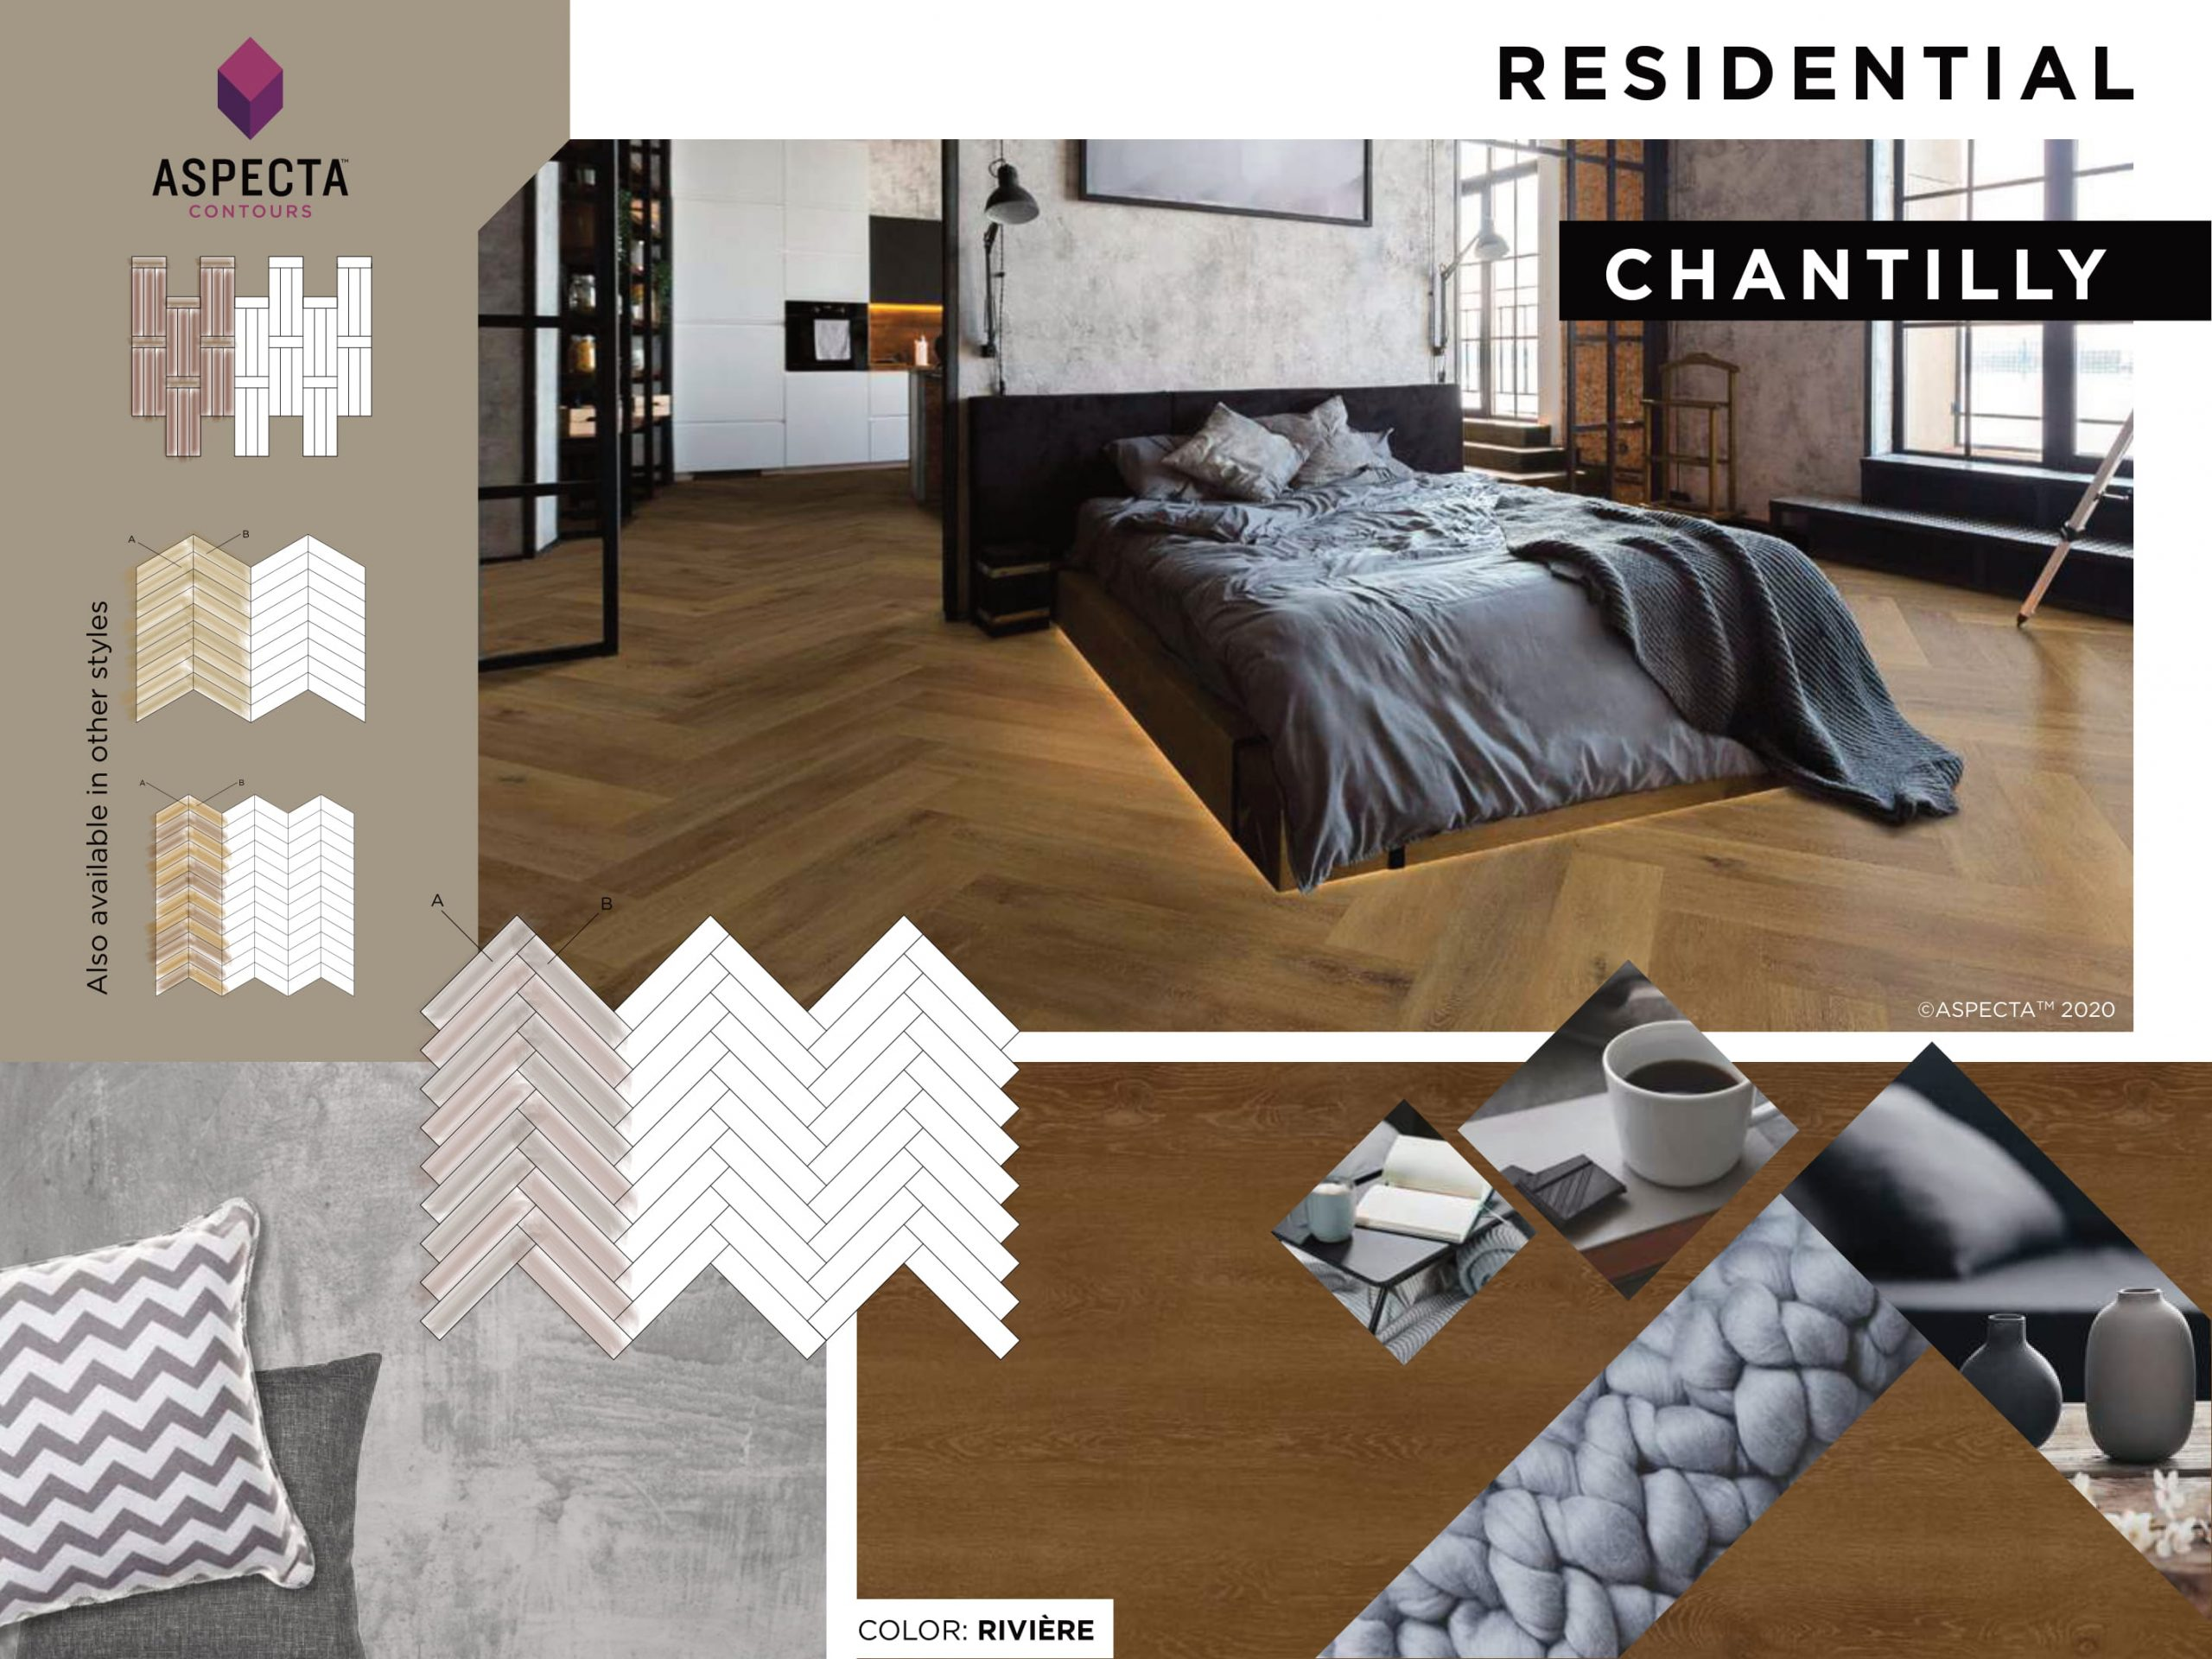 04_ASP_Contours_Moodboard_Chantilly_Residential_web_04_2020-1